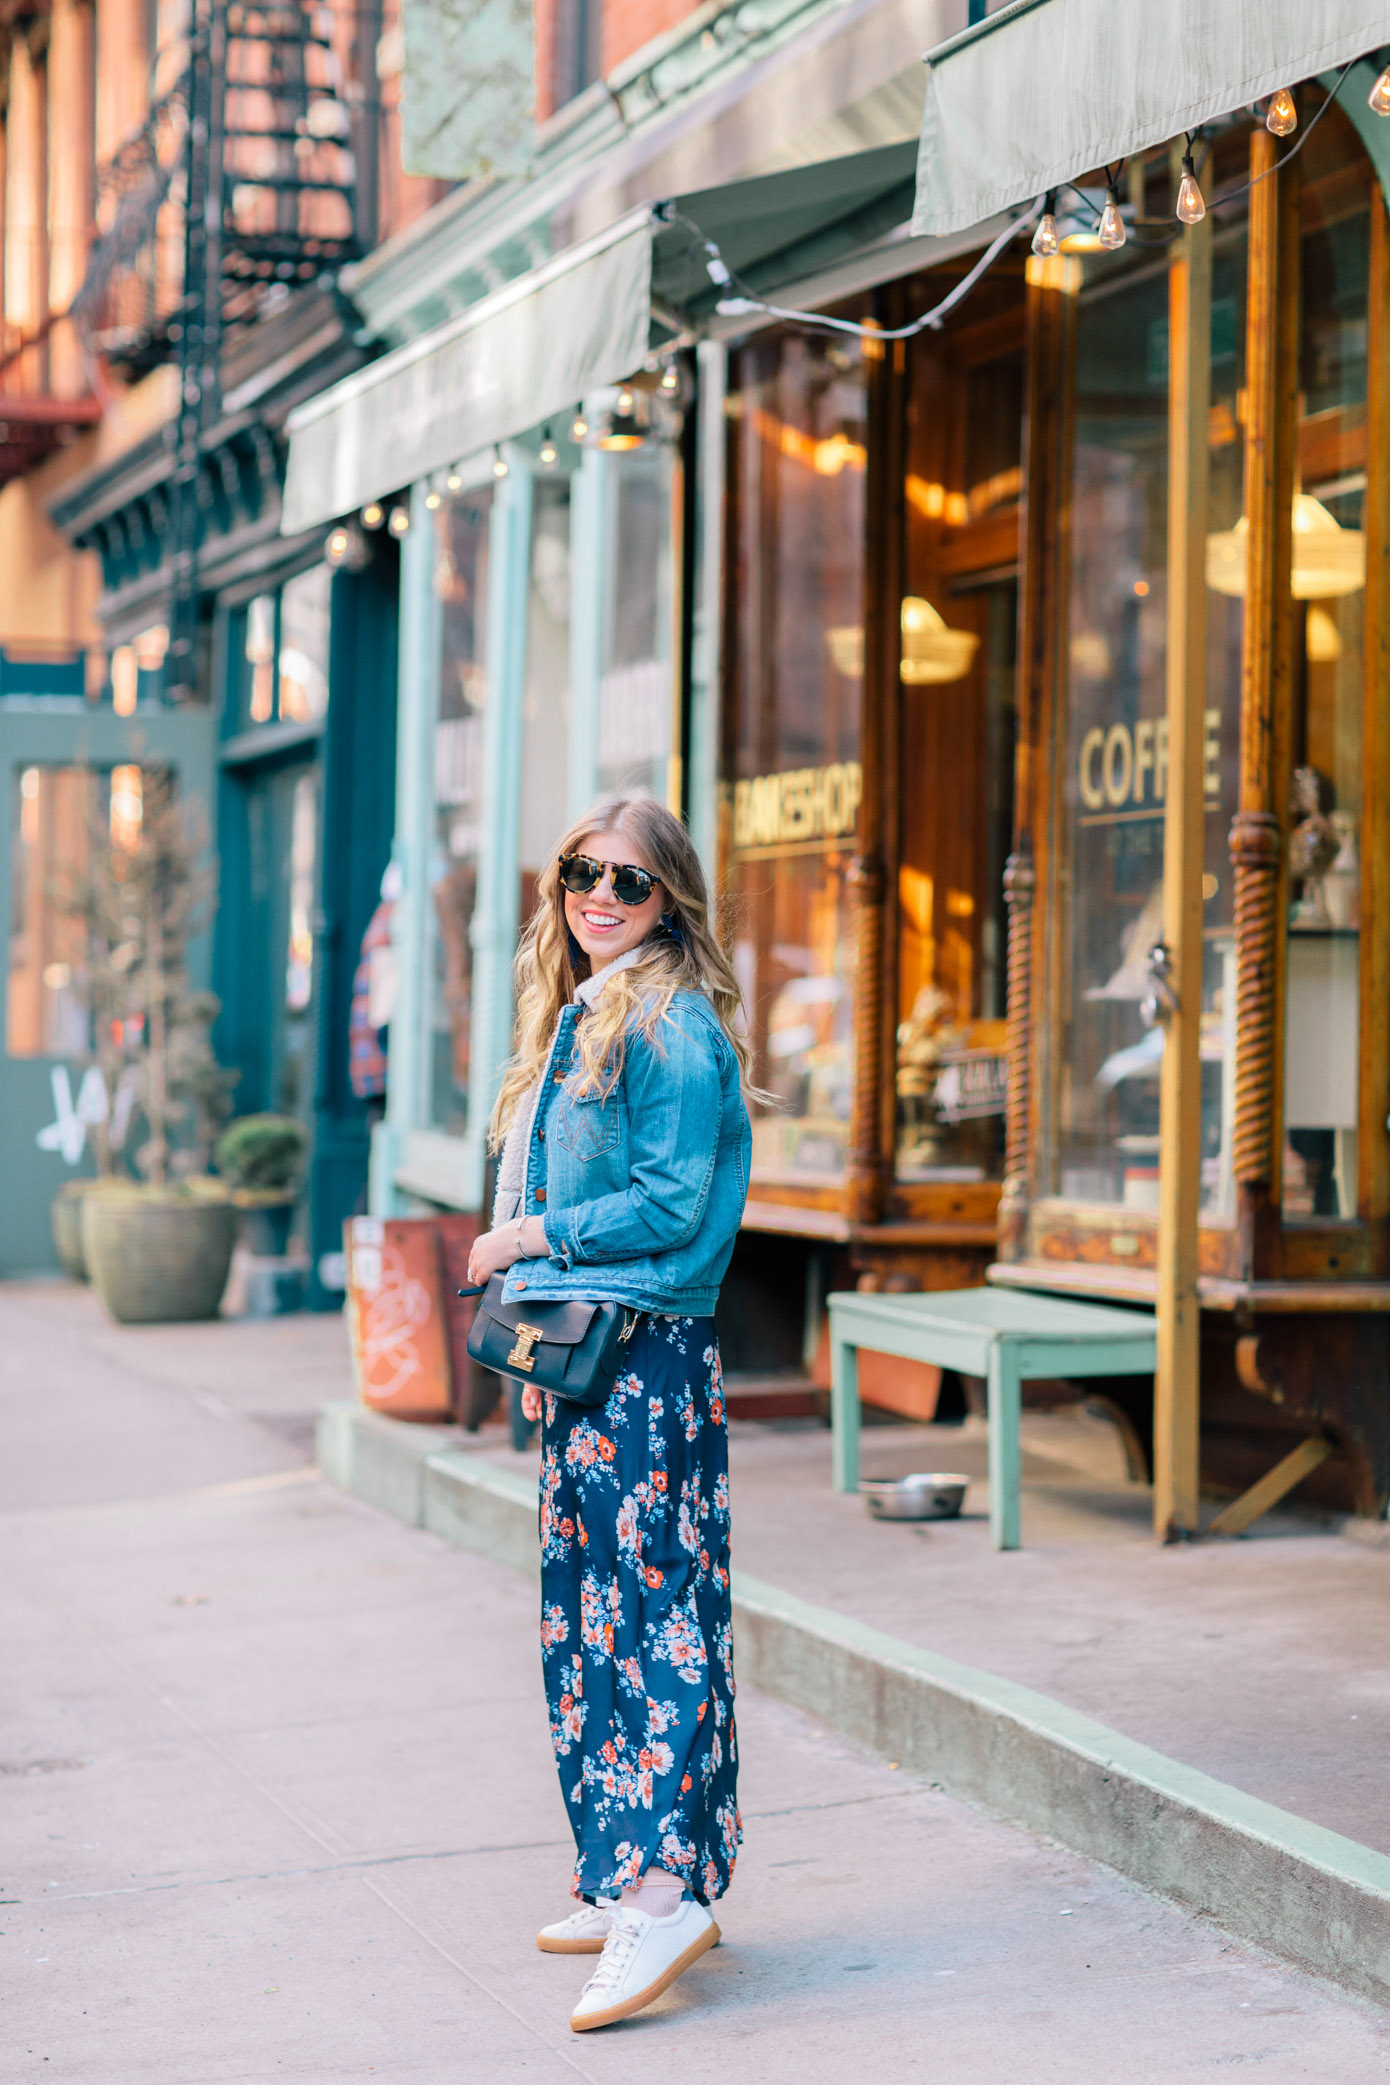 How to Wear Your Spring Dresses Now | Pairing a Maxi Dress with Sneakers | Louella Reese Life & Style Blog